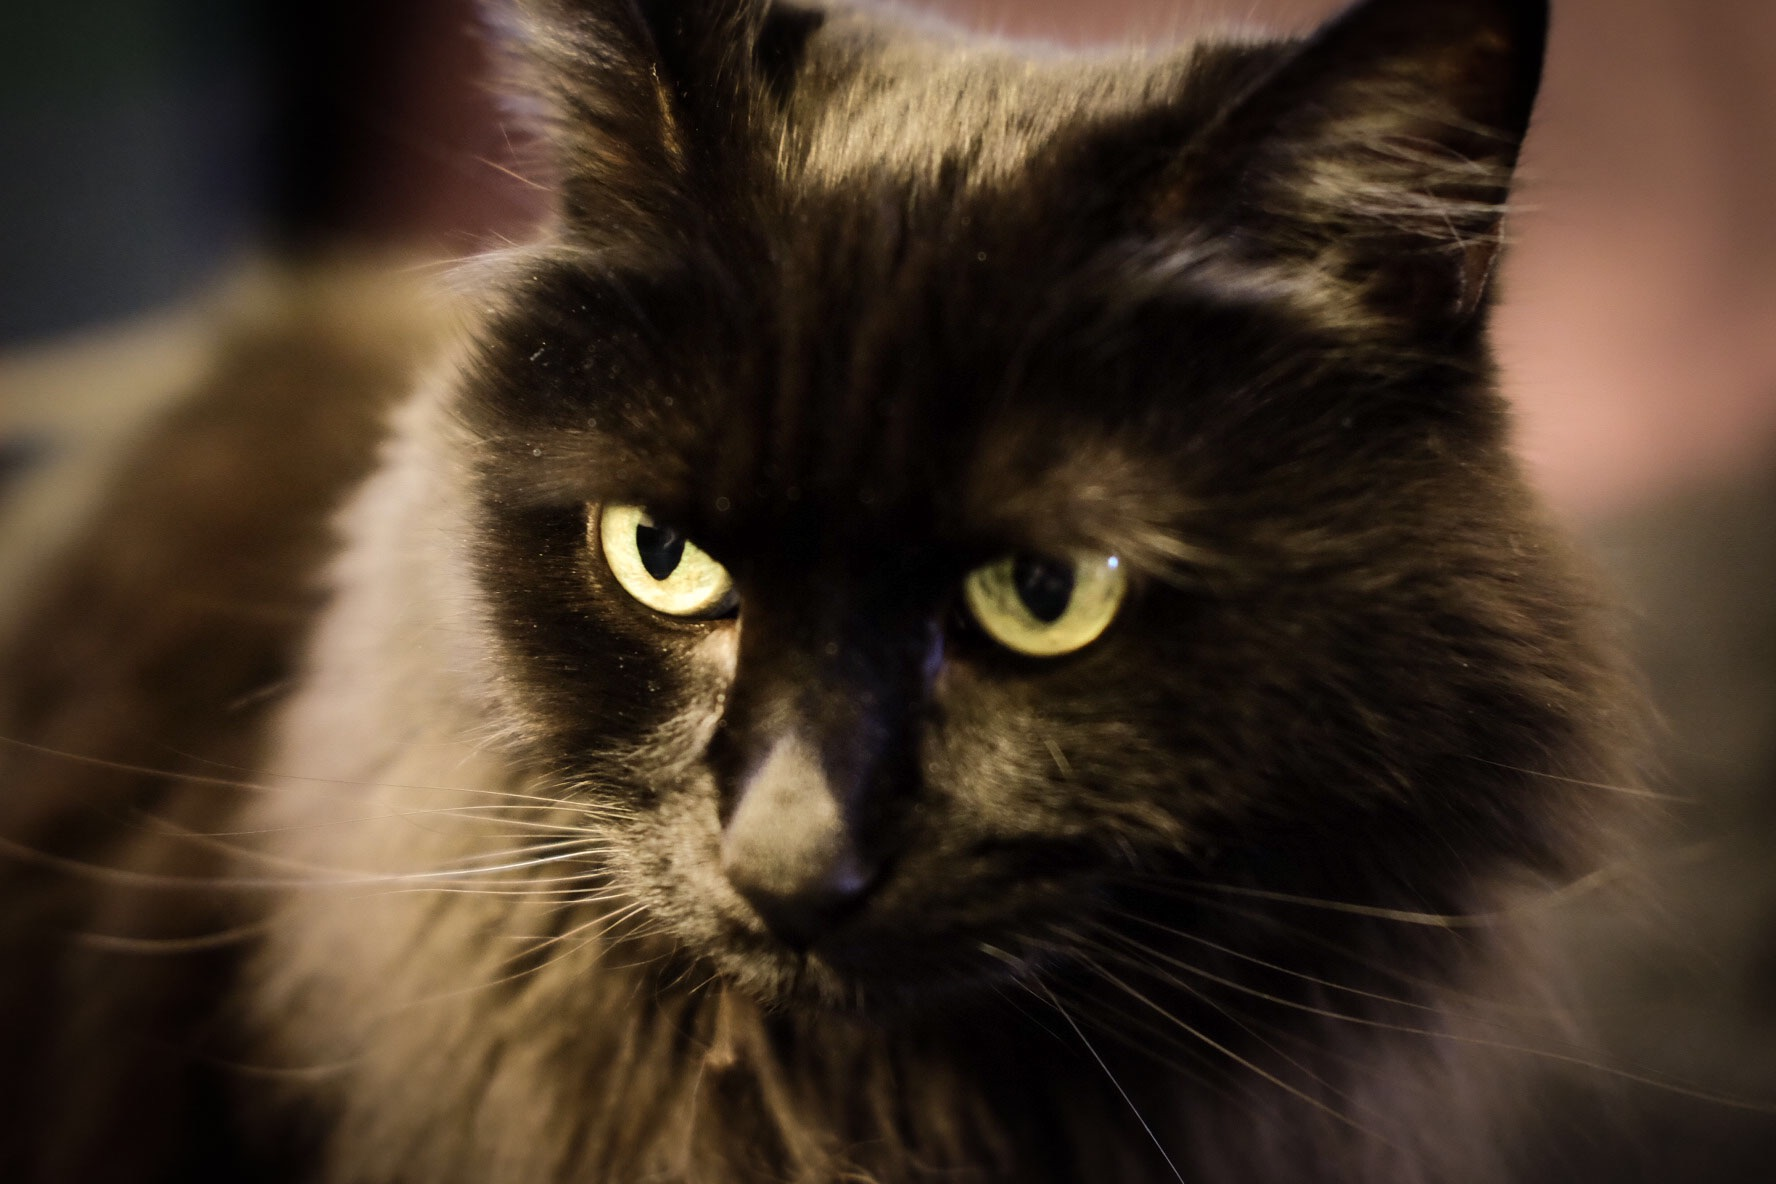 Hallie, our 11 year old black cat